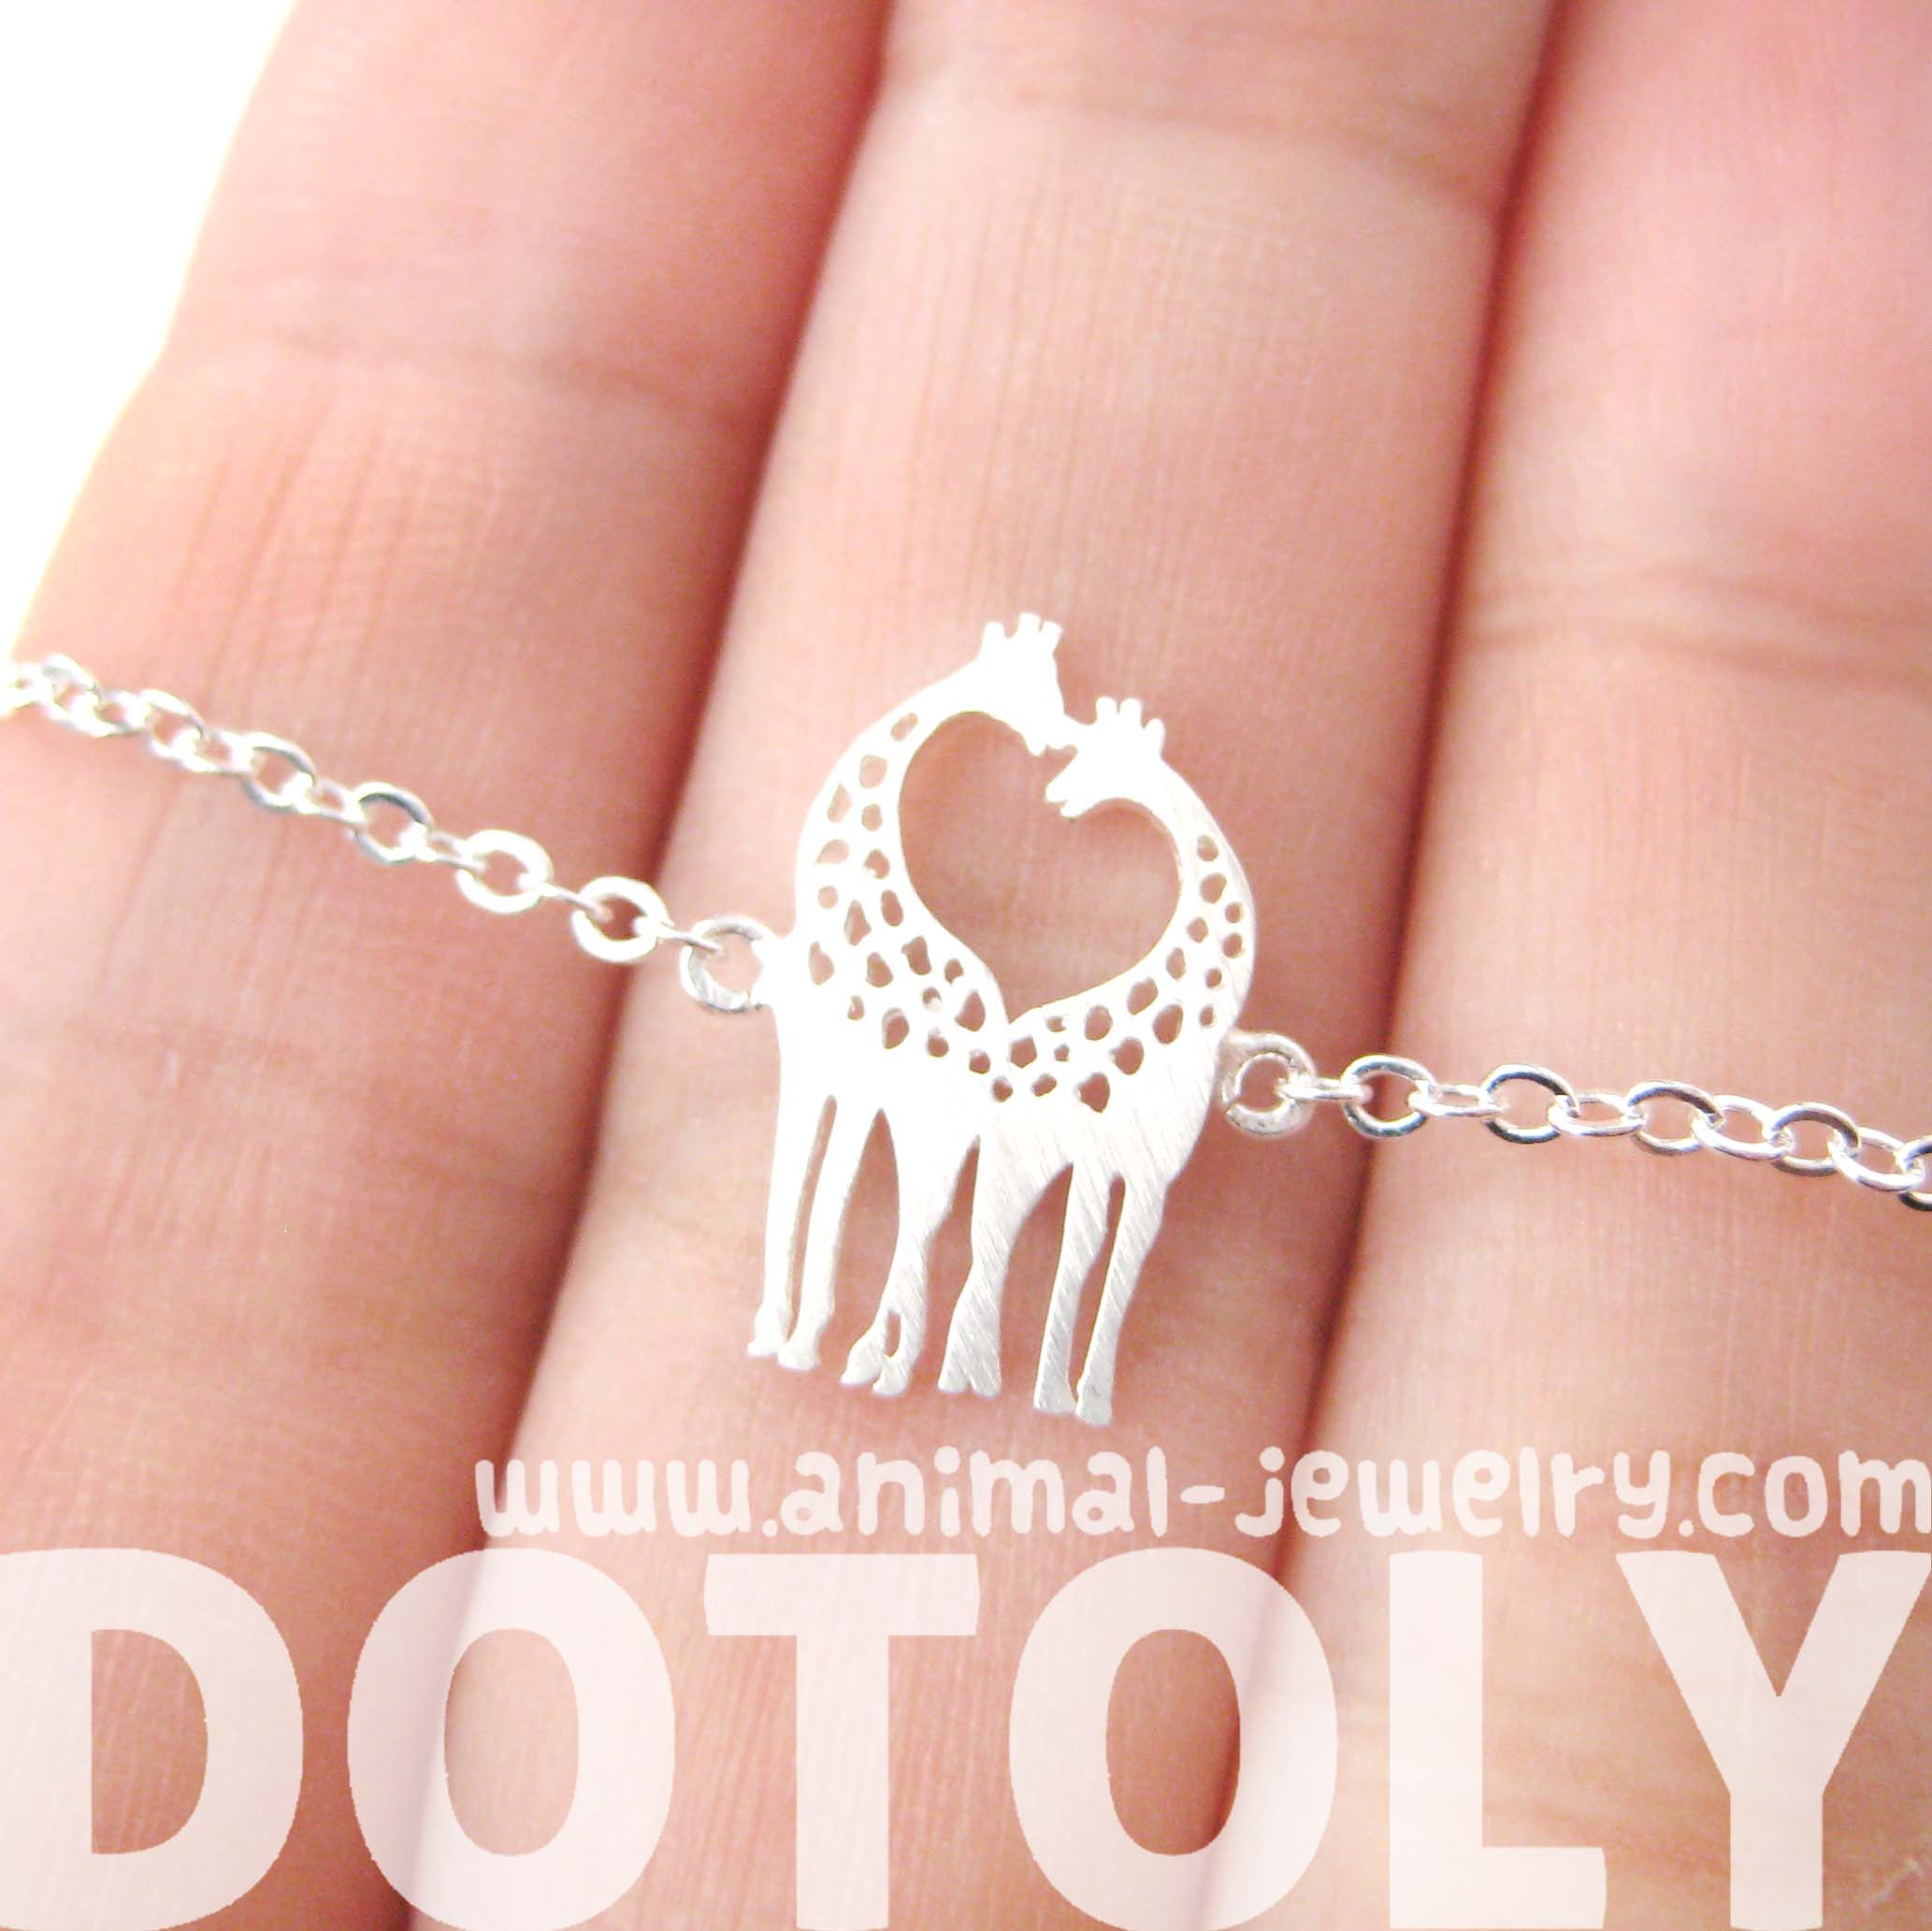 out necklace crowd giraffe charm shown pendant model the from stand on chain silver sterling